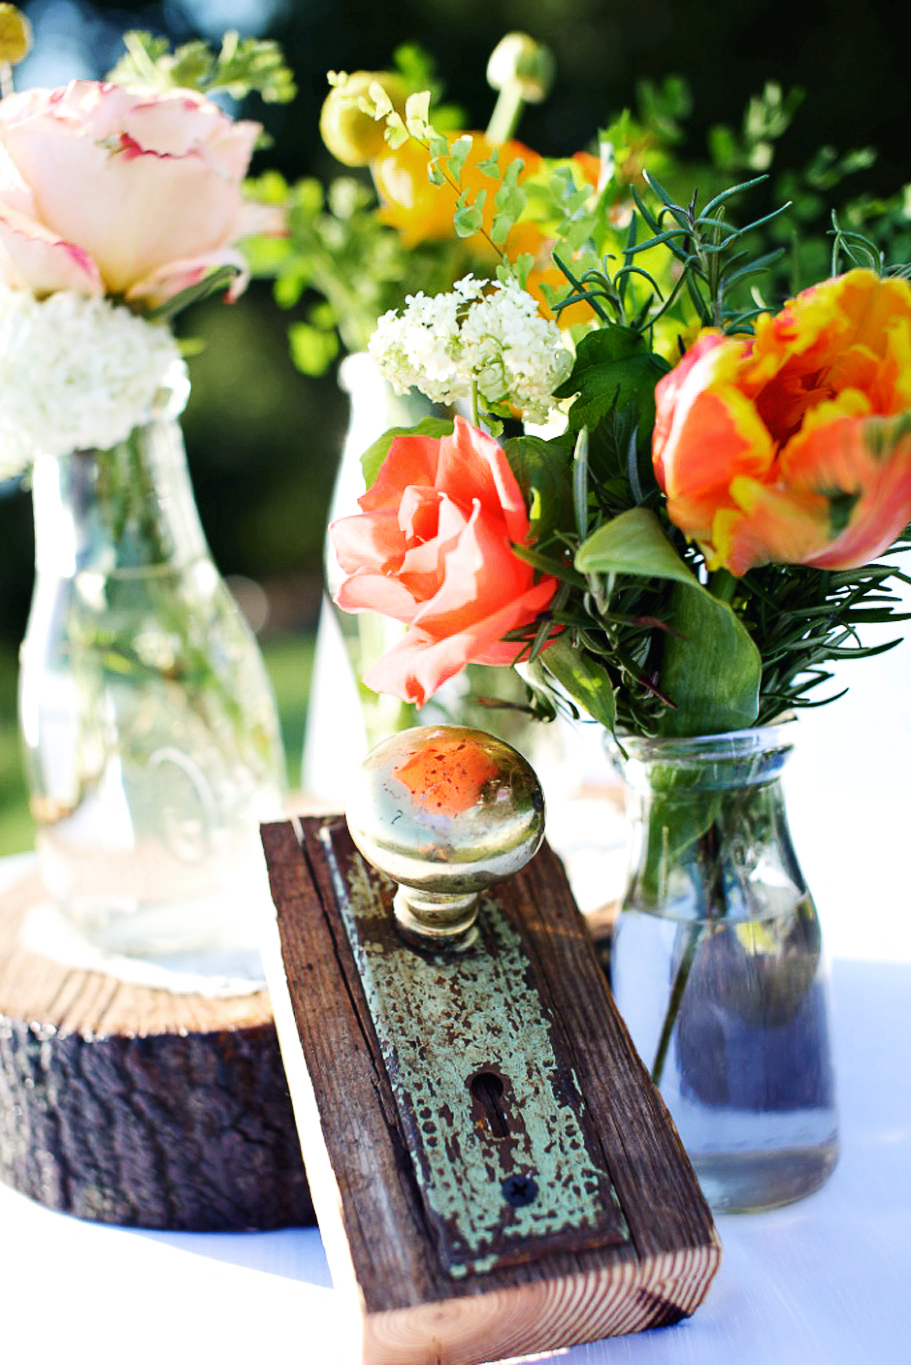 Rustic Citrus Wedding Inspiration Outdoor Spring Ideas Centerpieces 2